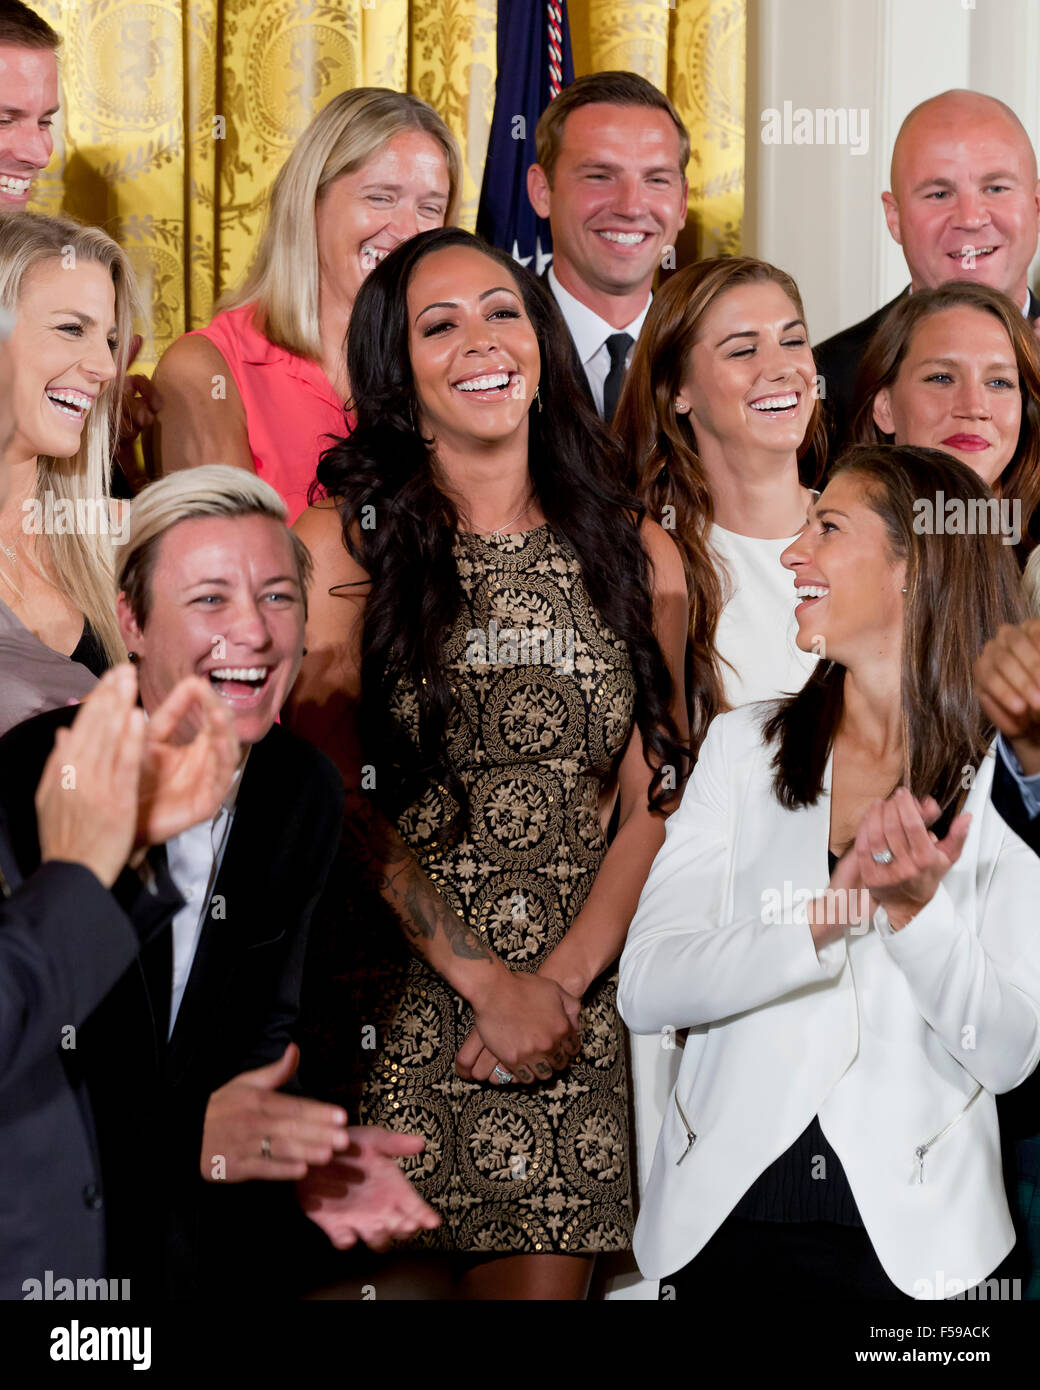 US Women's Soccer Team members at White House event - Washington, DC USA - Stock Image